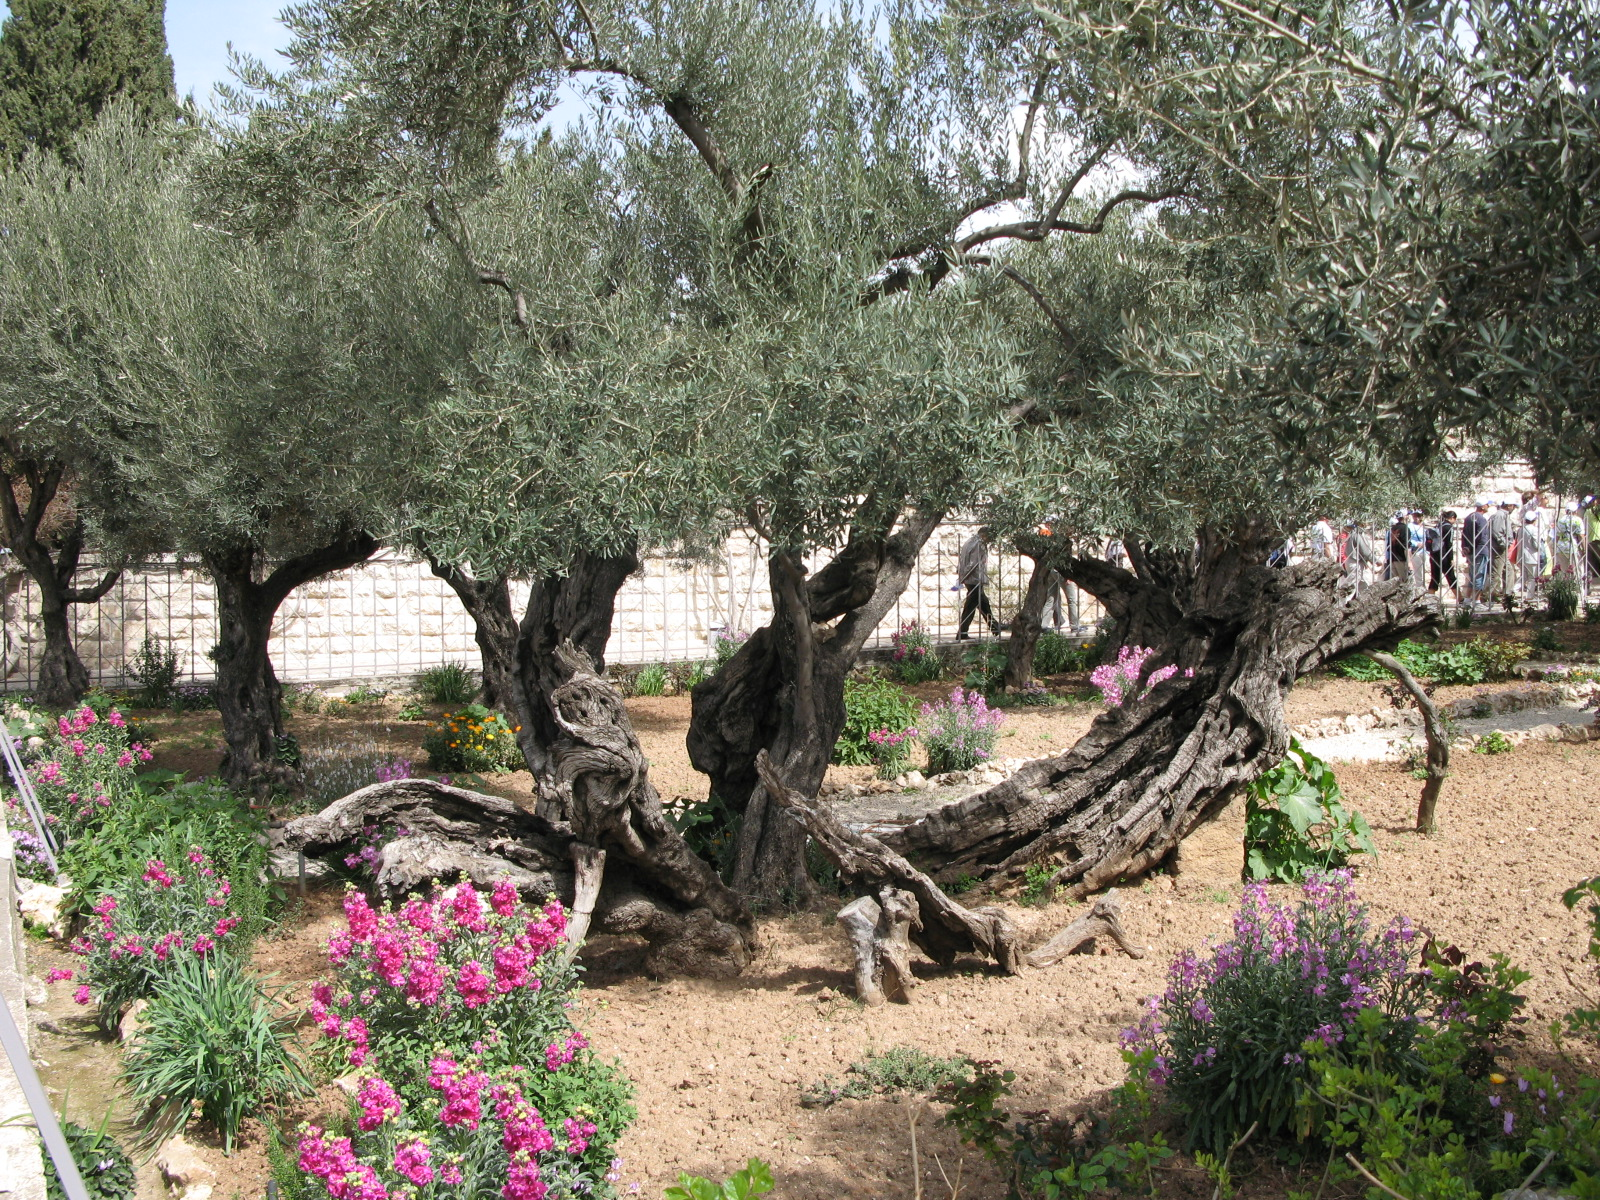 Gethsemene's oldest olive tree